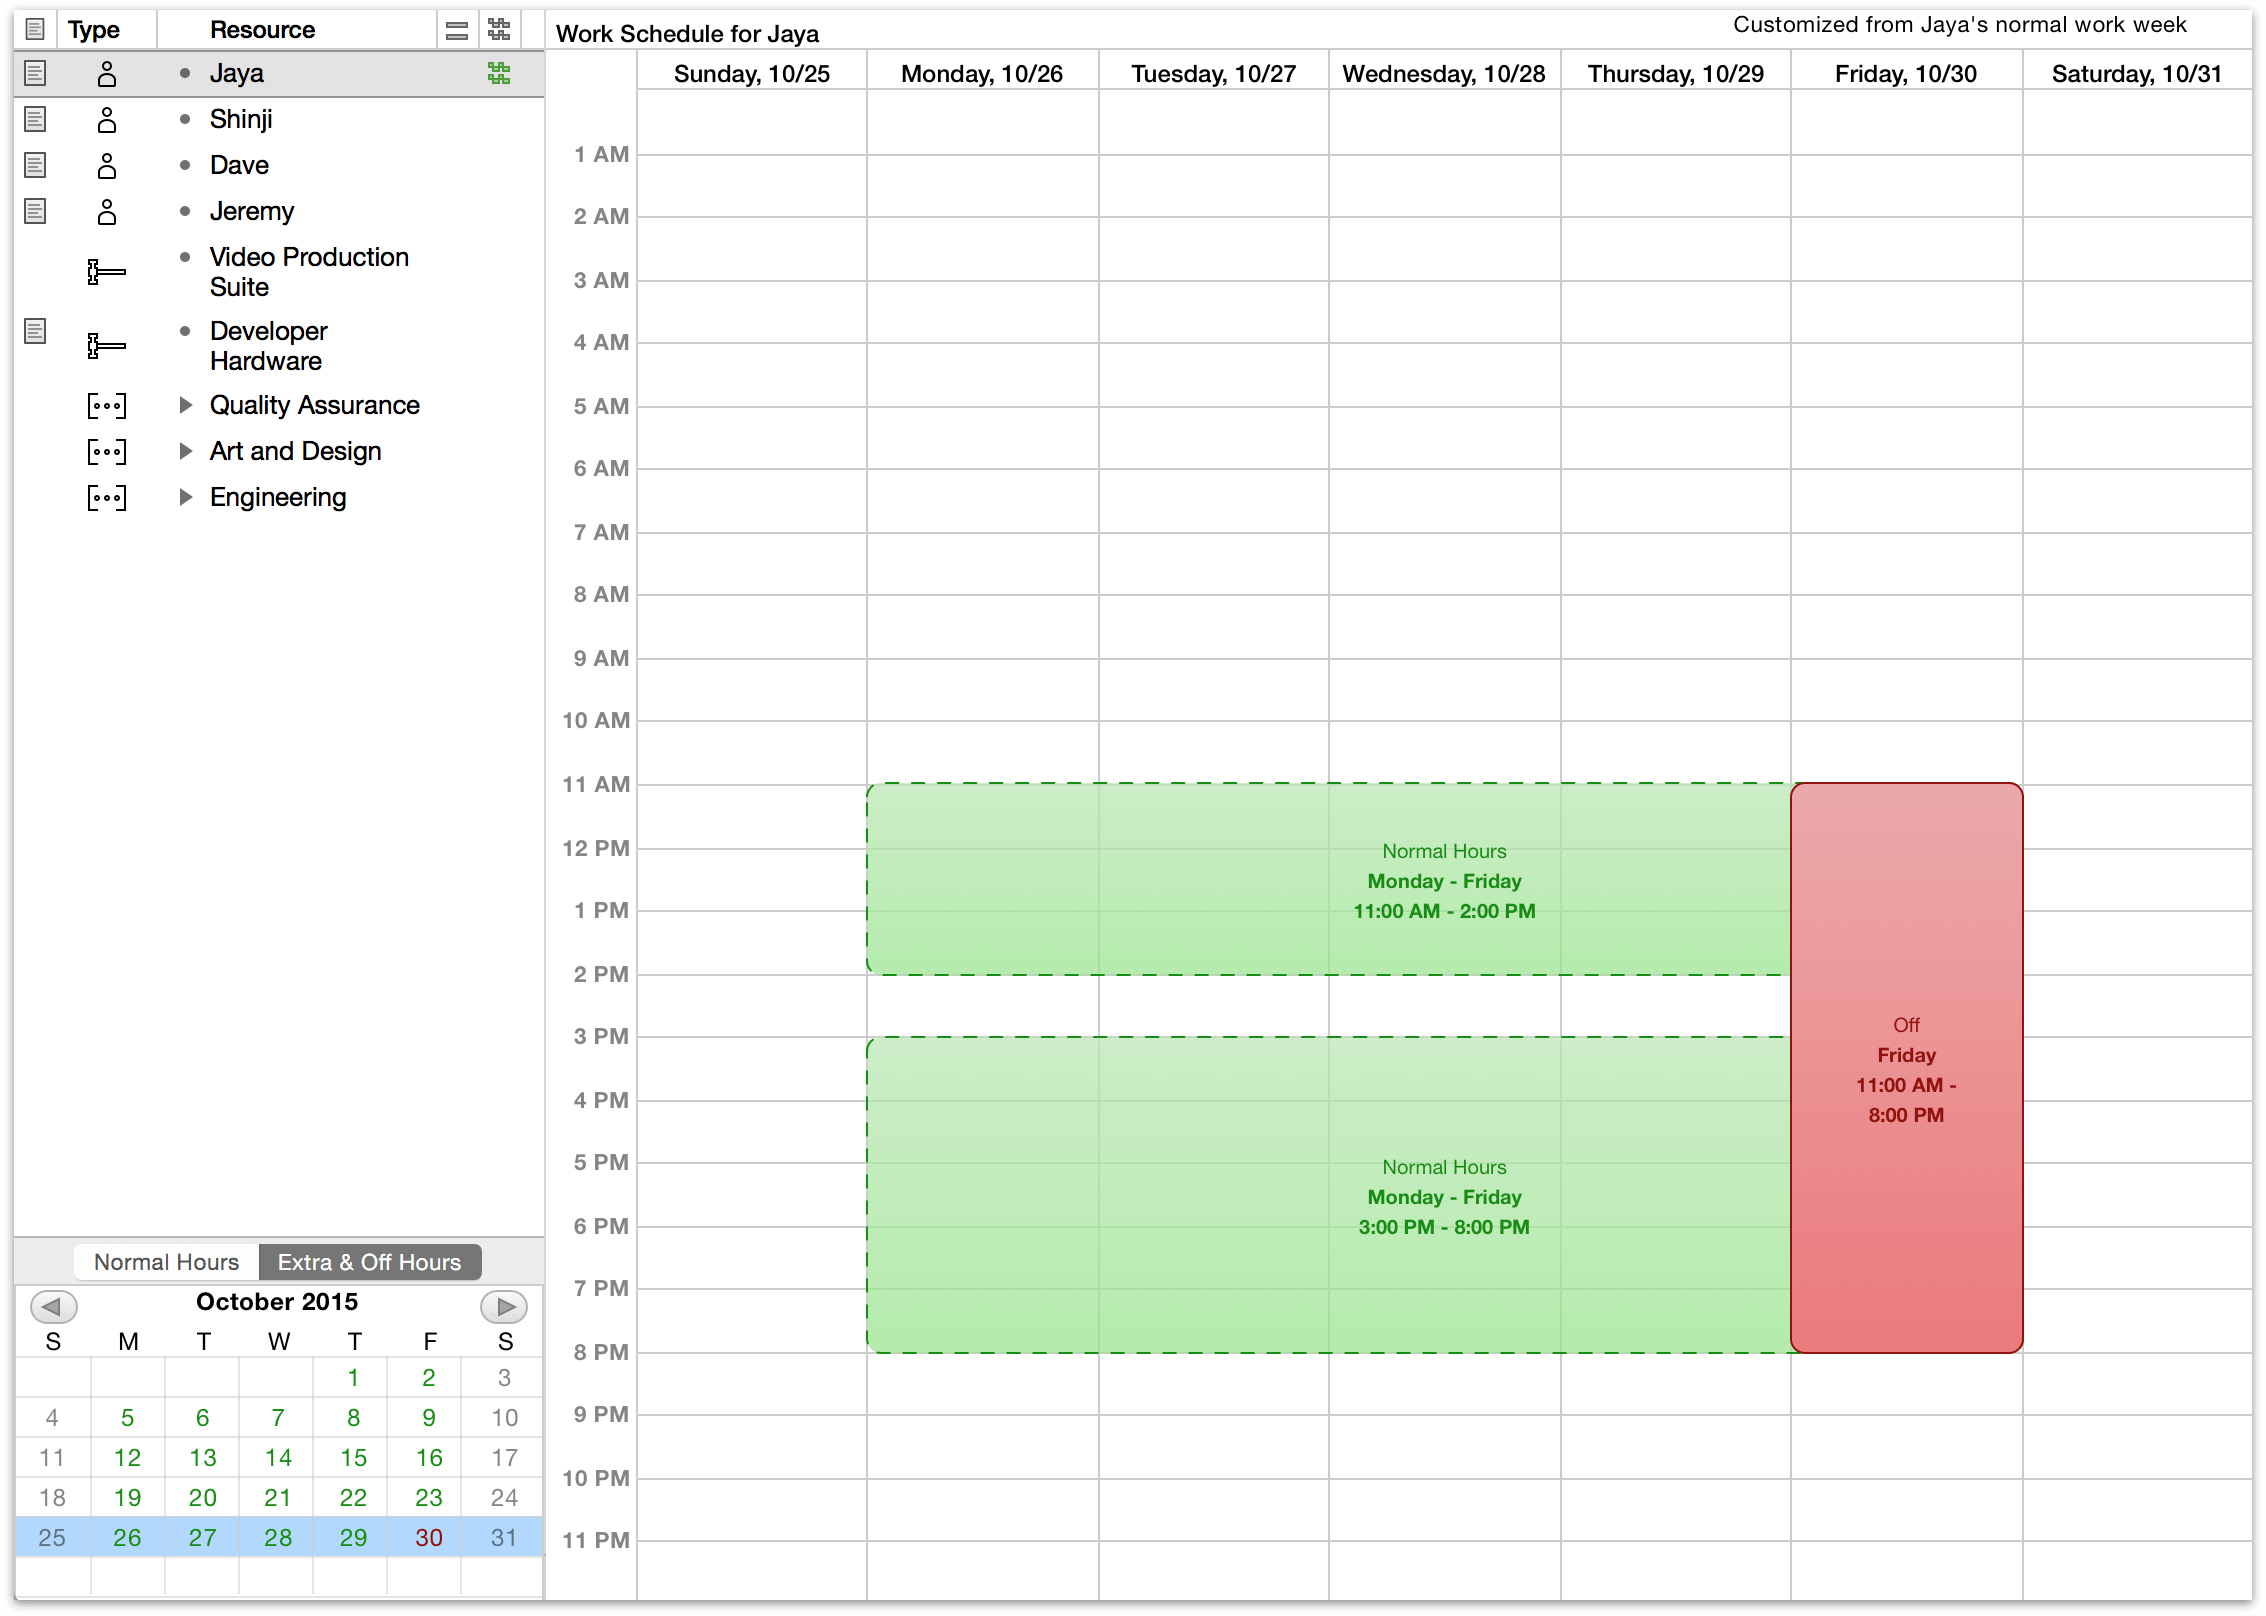 Describing vacation time for an individual staff member in Calendar view.